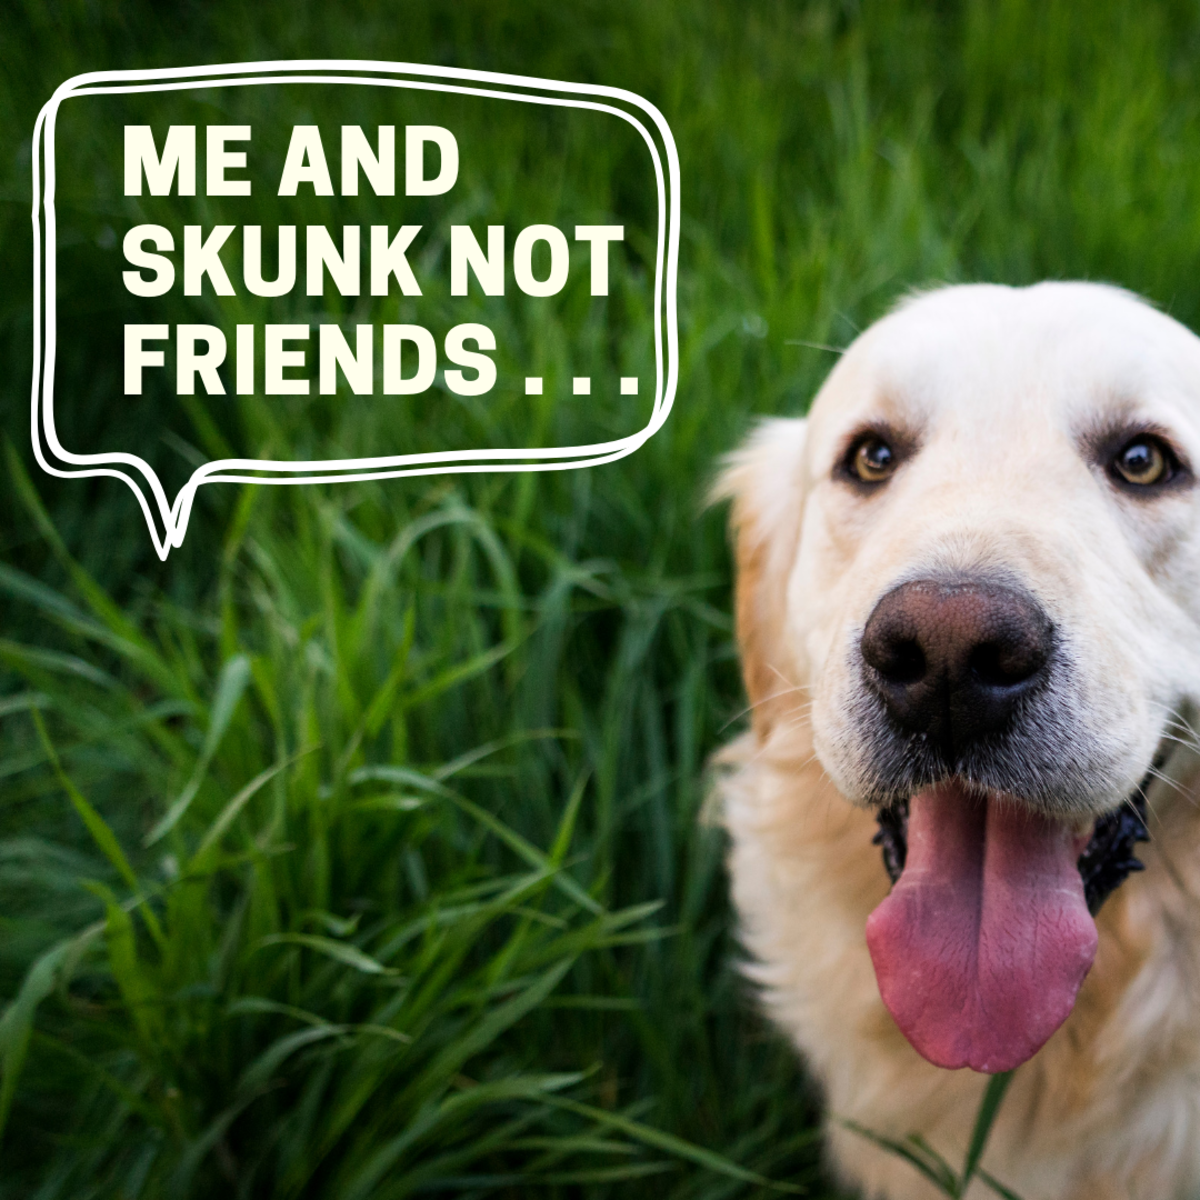 Does Tomato Juice Get Rid of Skunk Smell on Dogs?